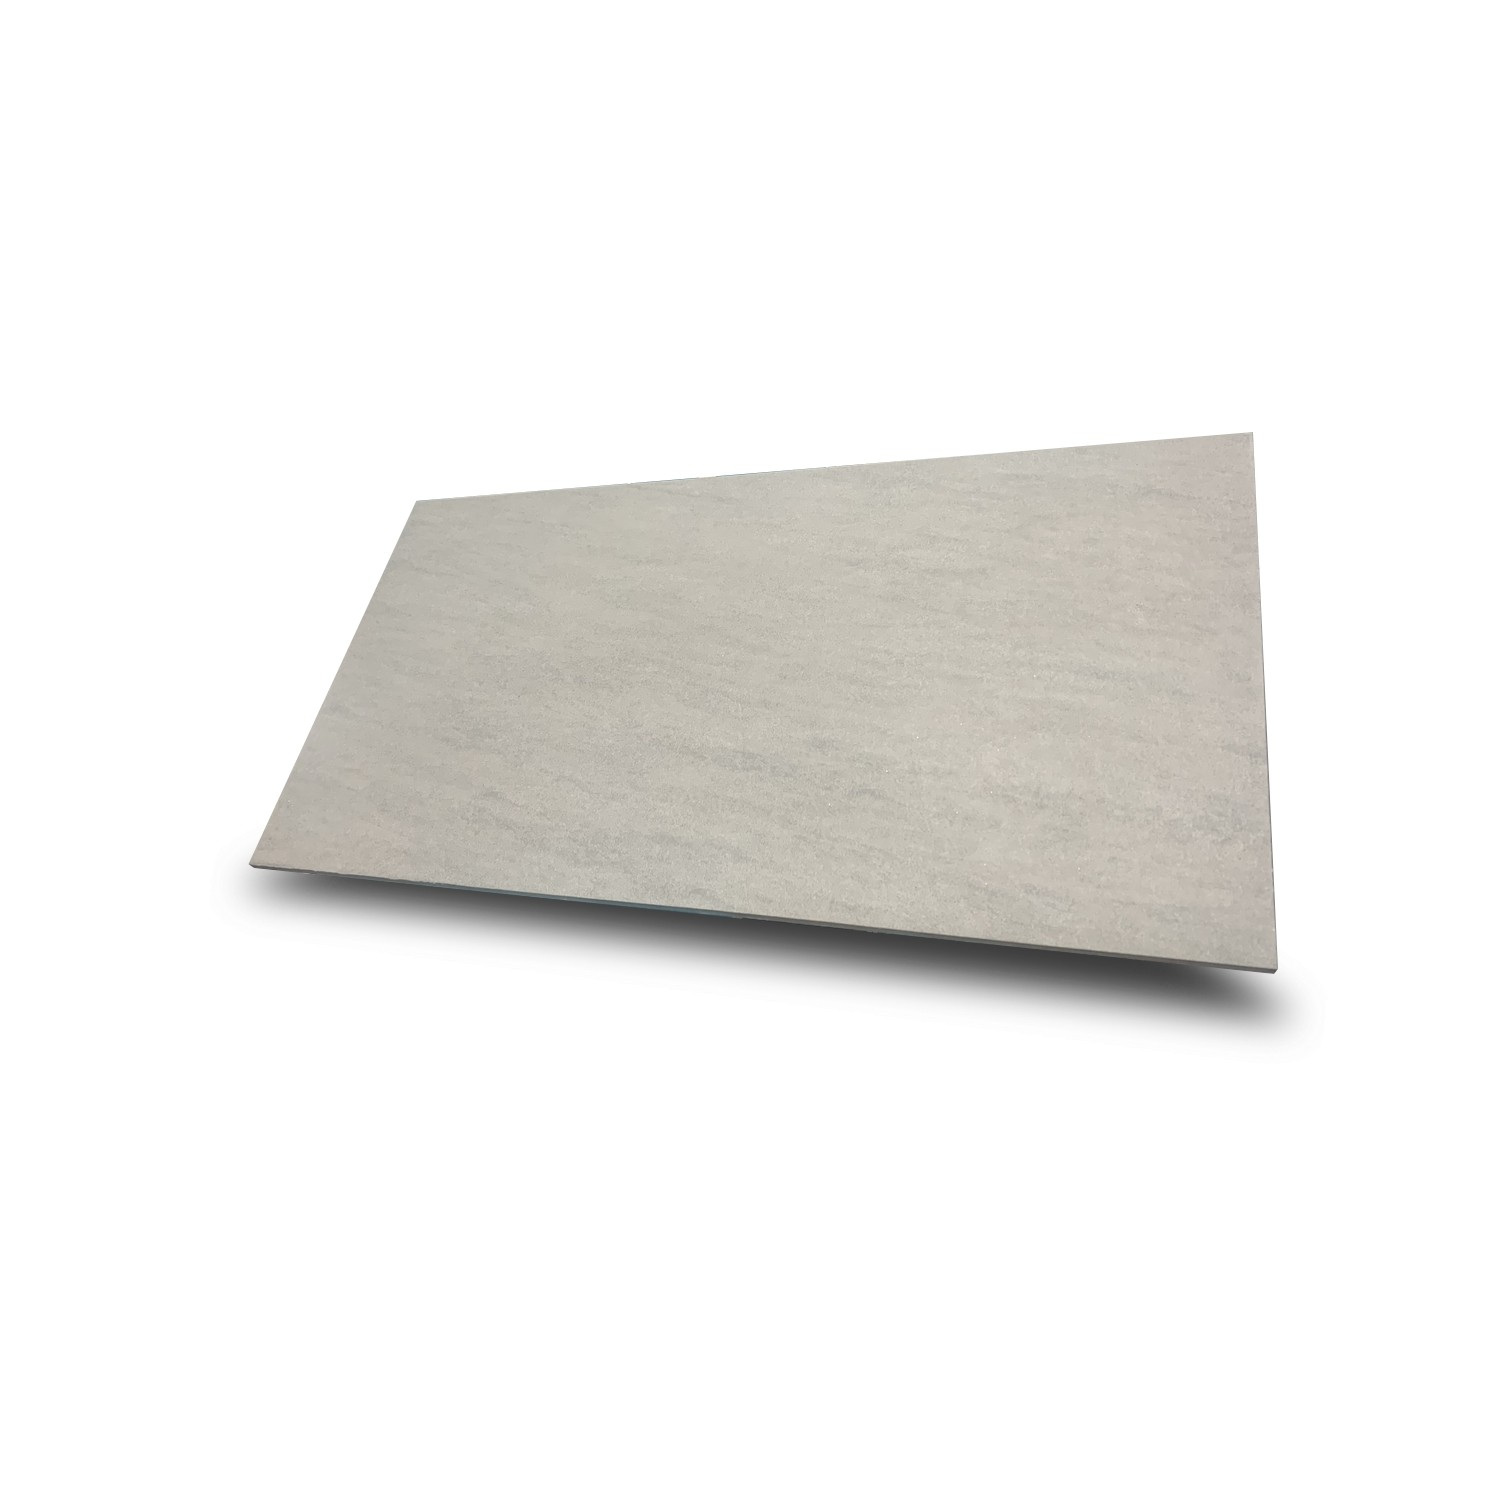 Enduit Facade Quartz Materiaux Bc Quartz Grey Carrelage Sol Mur 30x60x1cm Chants Rectifiée